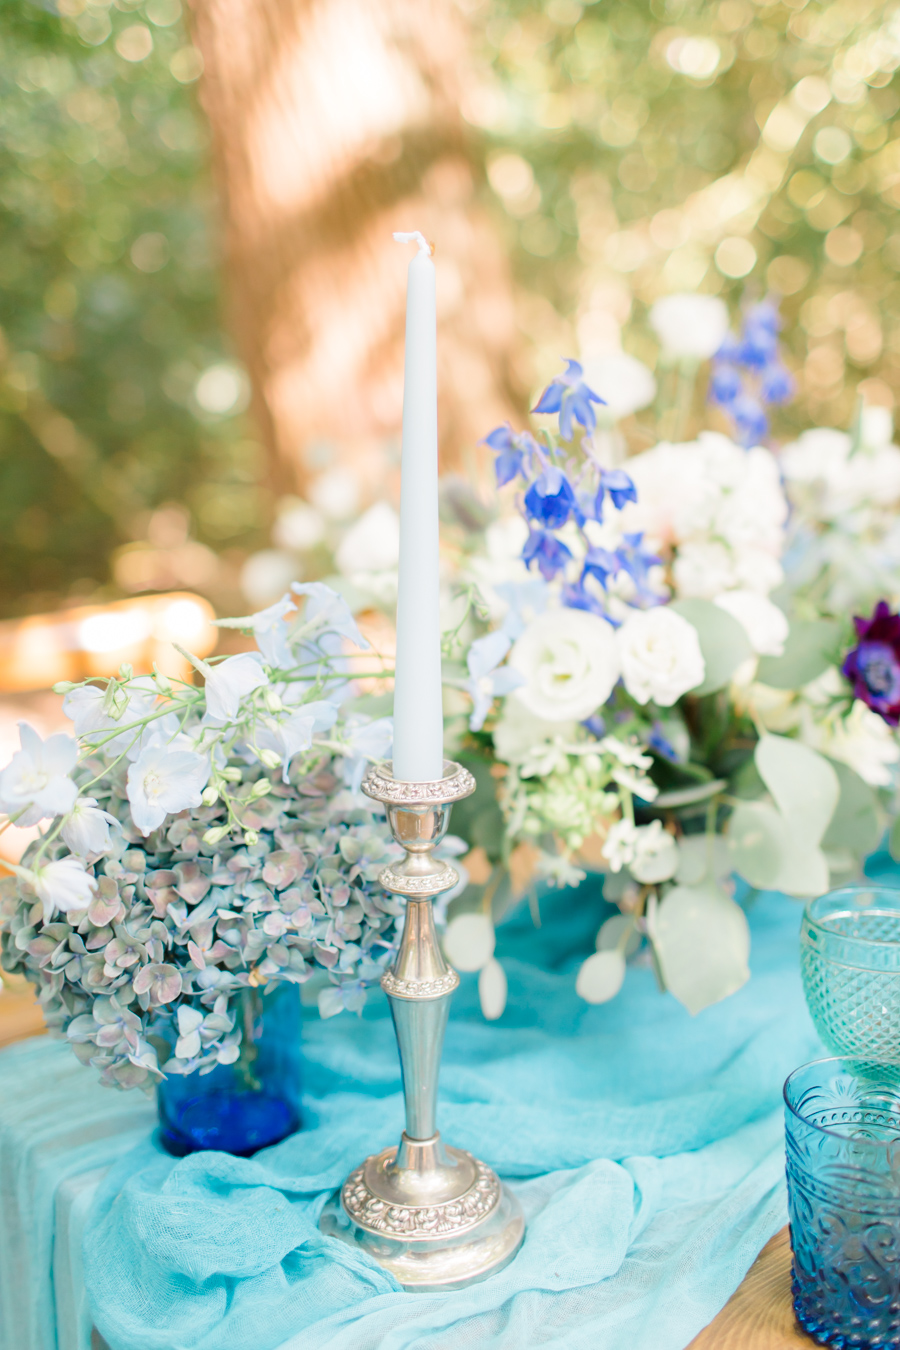 Beautiful and delicate blue tones for a woodland wedding styled by Sara's Events Flowers. Photo credit Natalie Stevenson Photography (6)